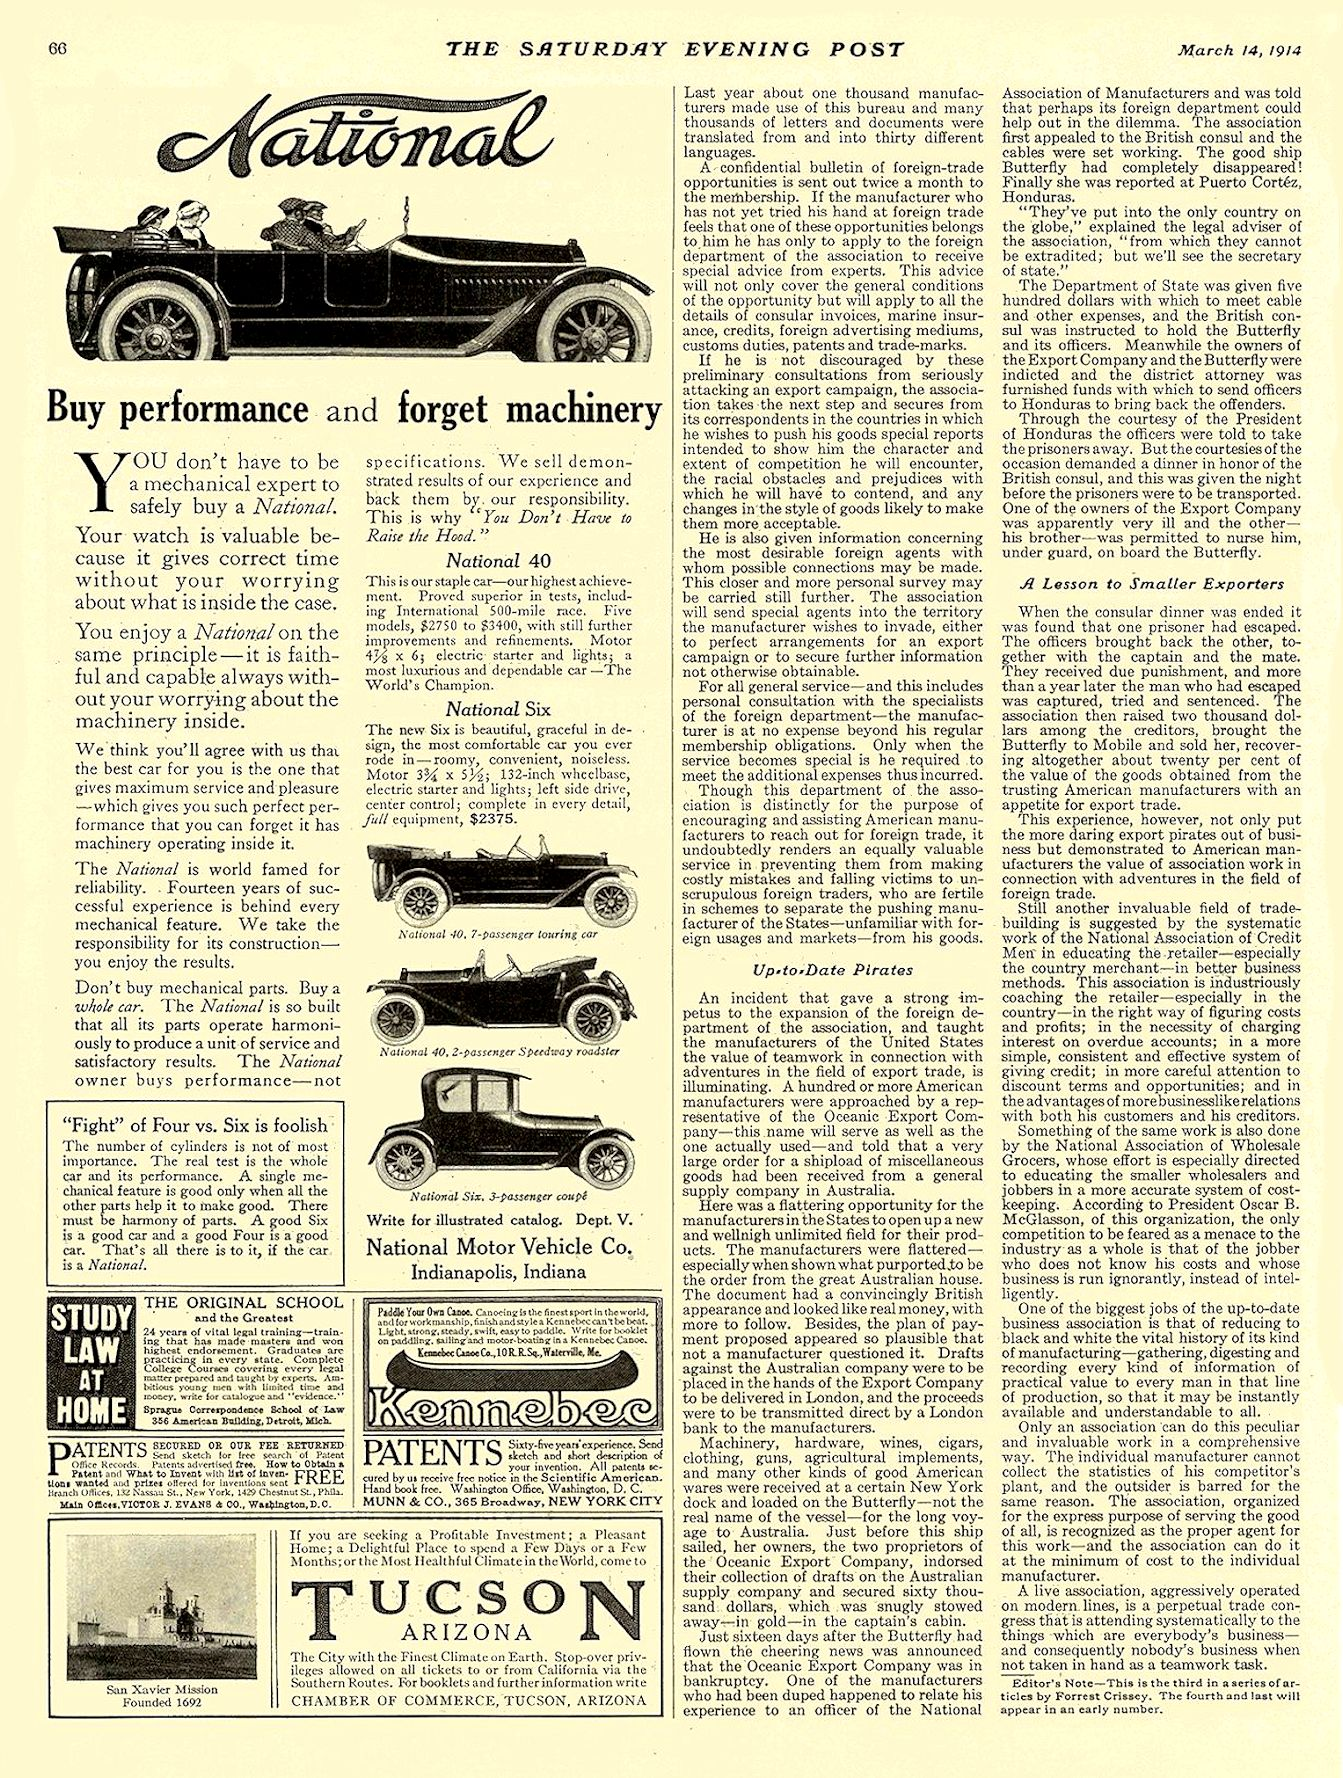 1914 3 14 NATIONAL Buy performance and forget machinery National Motor Vehicle Co. Indianapolis, IND THE SATURDAY EVENING POST March 14, 1914 10″x13.75″ page 66